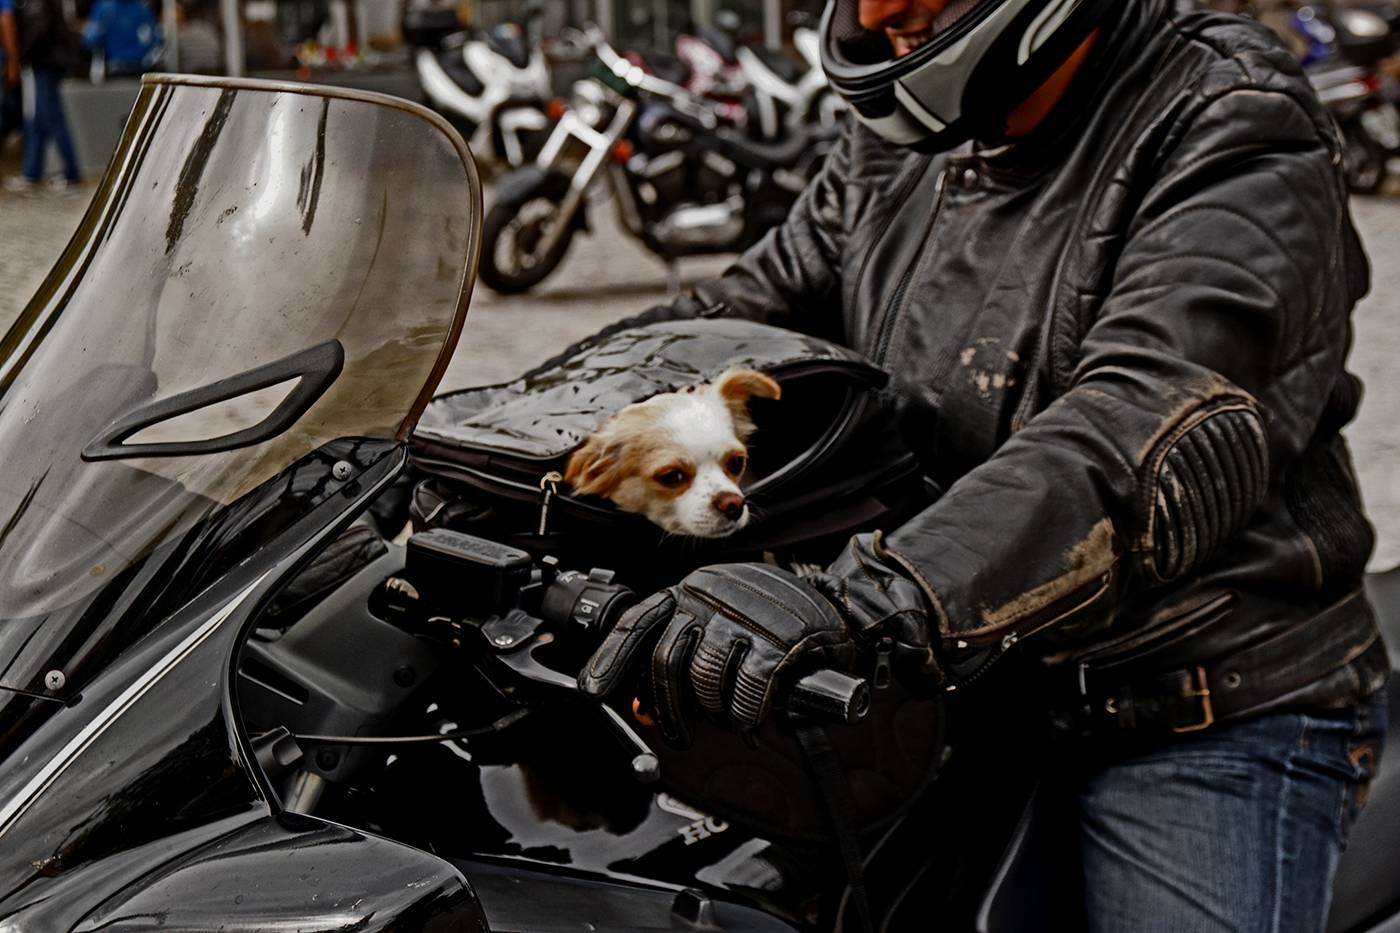 GOING FOR A RIDE by Ray Mengham.jpg